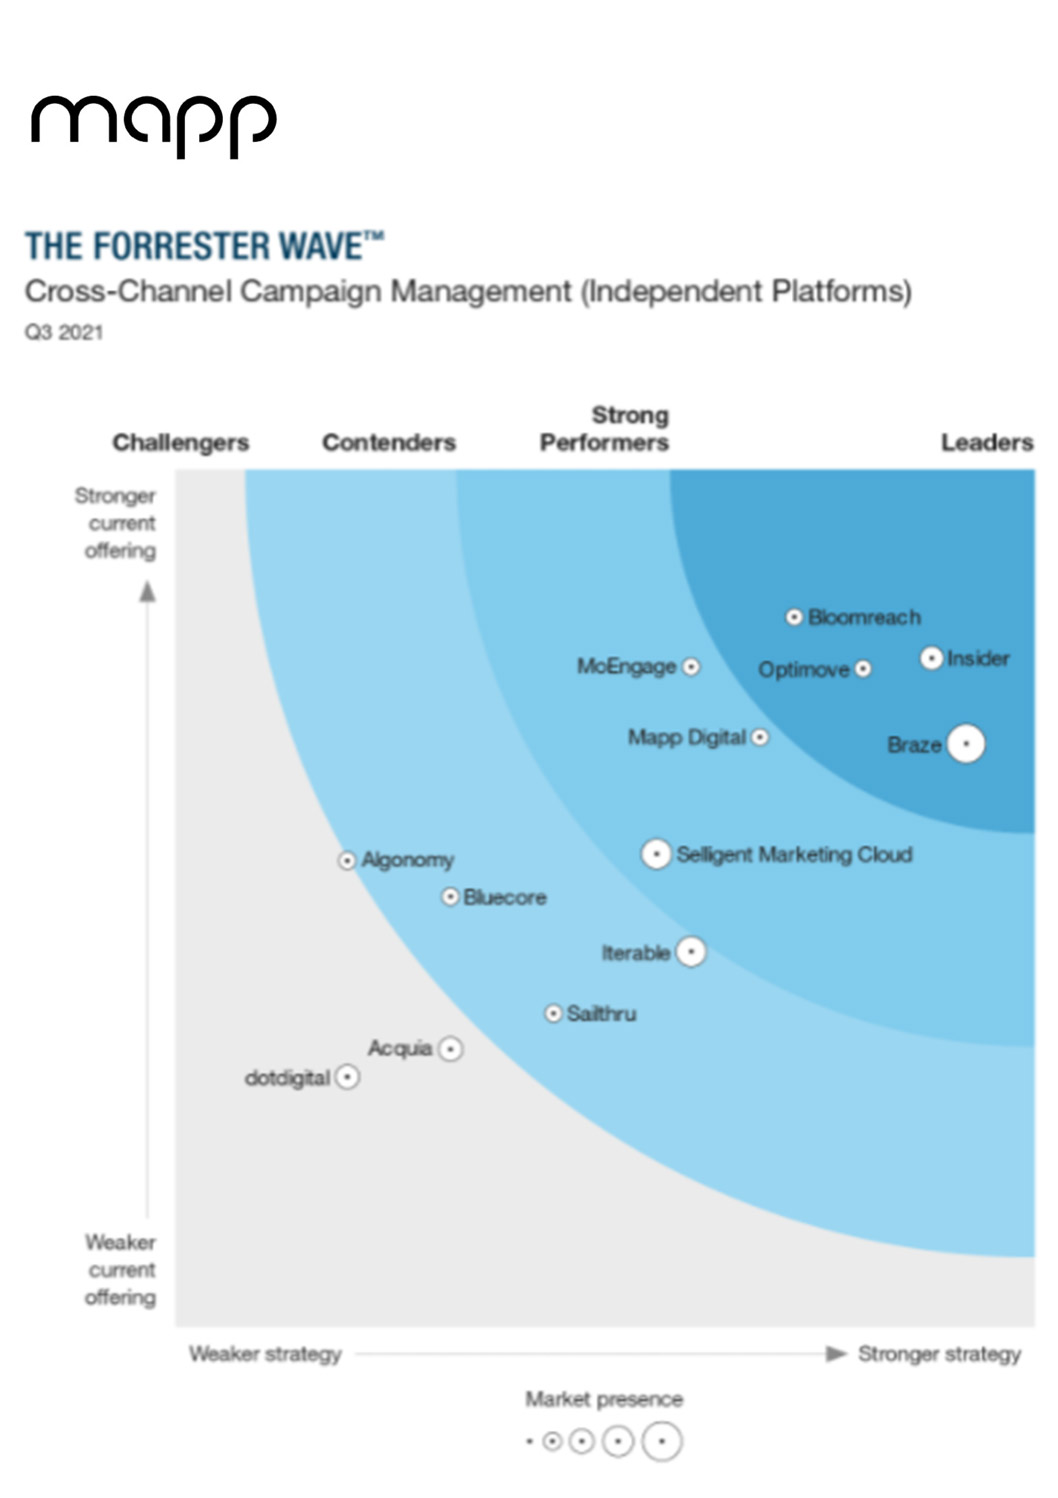 THE FORRESTER WAVE™: CROSS-CHANNEL CAMPAIGN MANAGEMENT